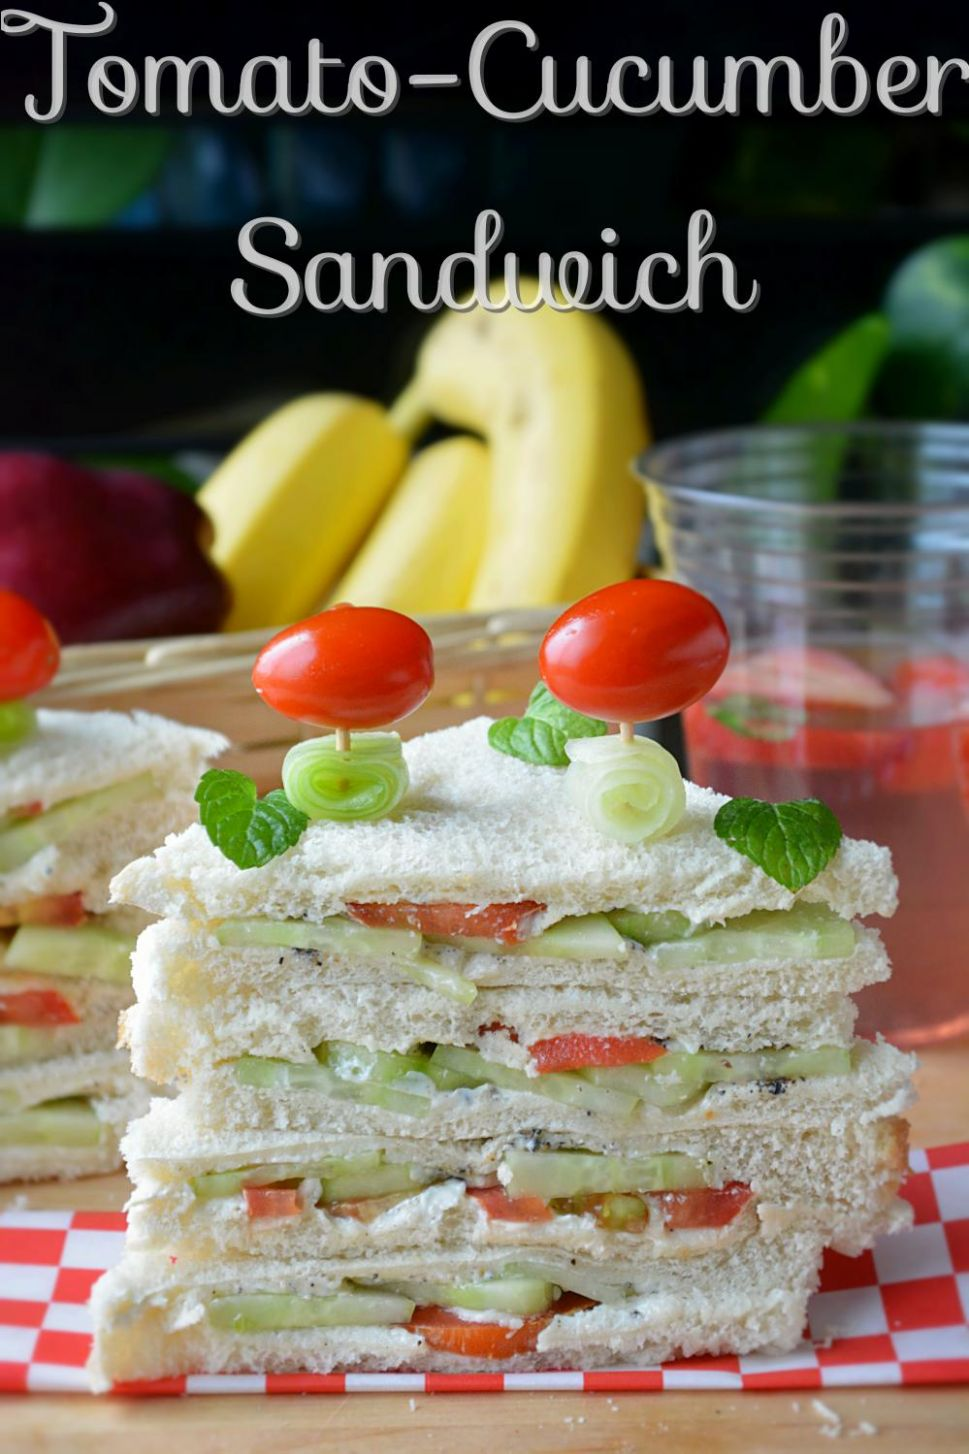 Tomato cucumber Veggie Sandwich - Sandwich Recipes Without Fire